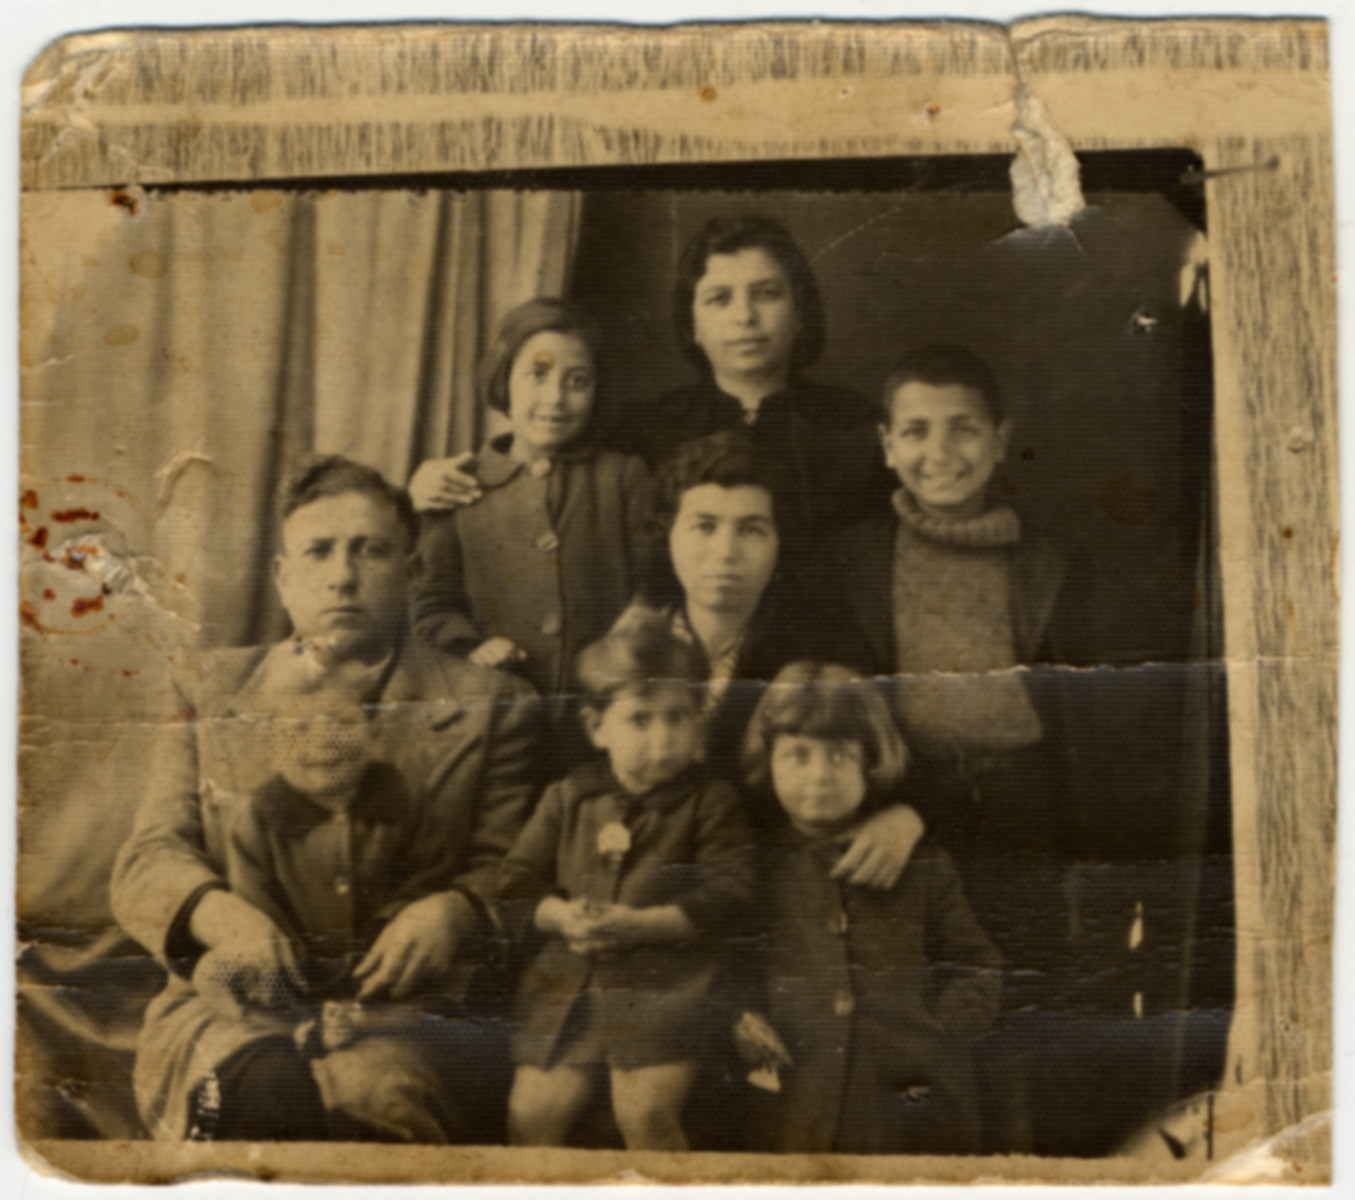 Group prewar portrait of a Greek Jewish family.  Pictured is the Ackos family